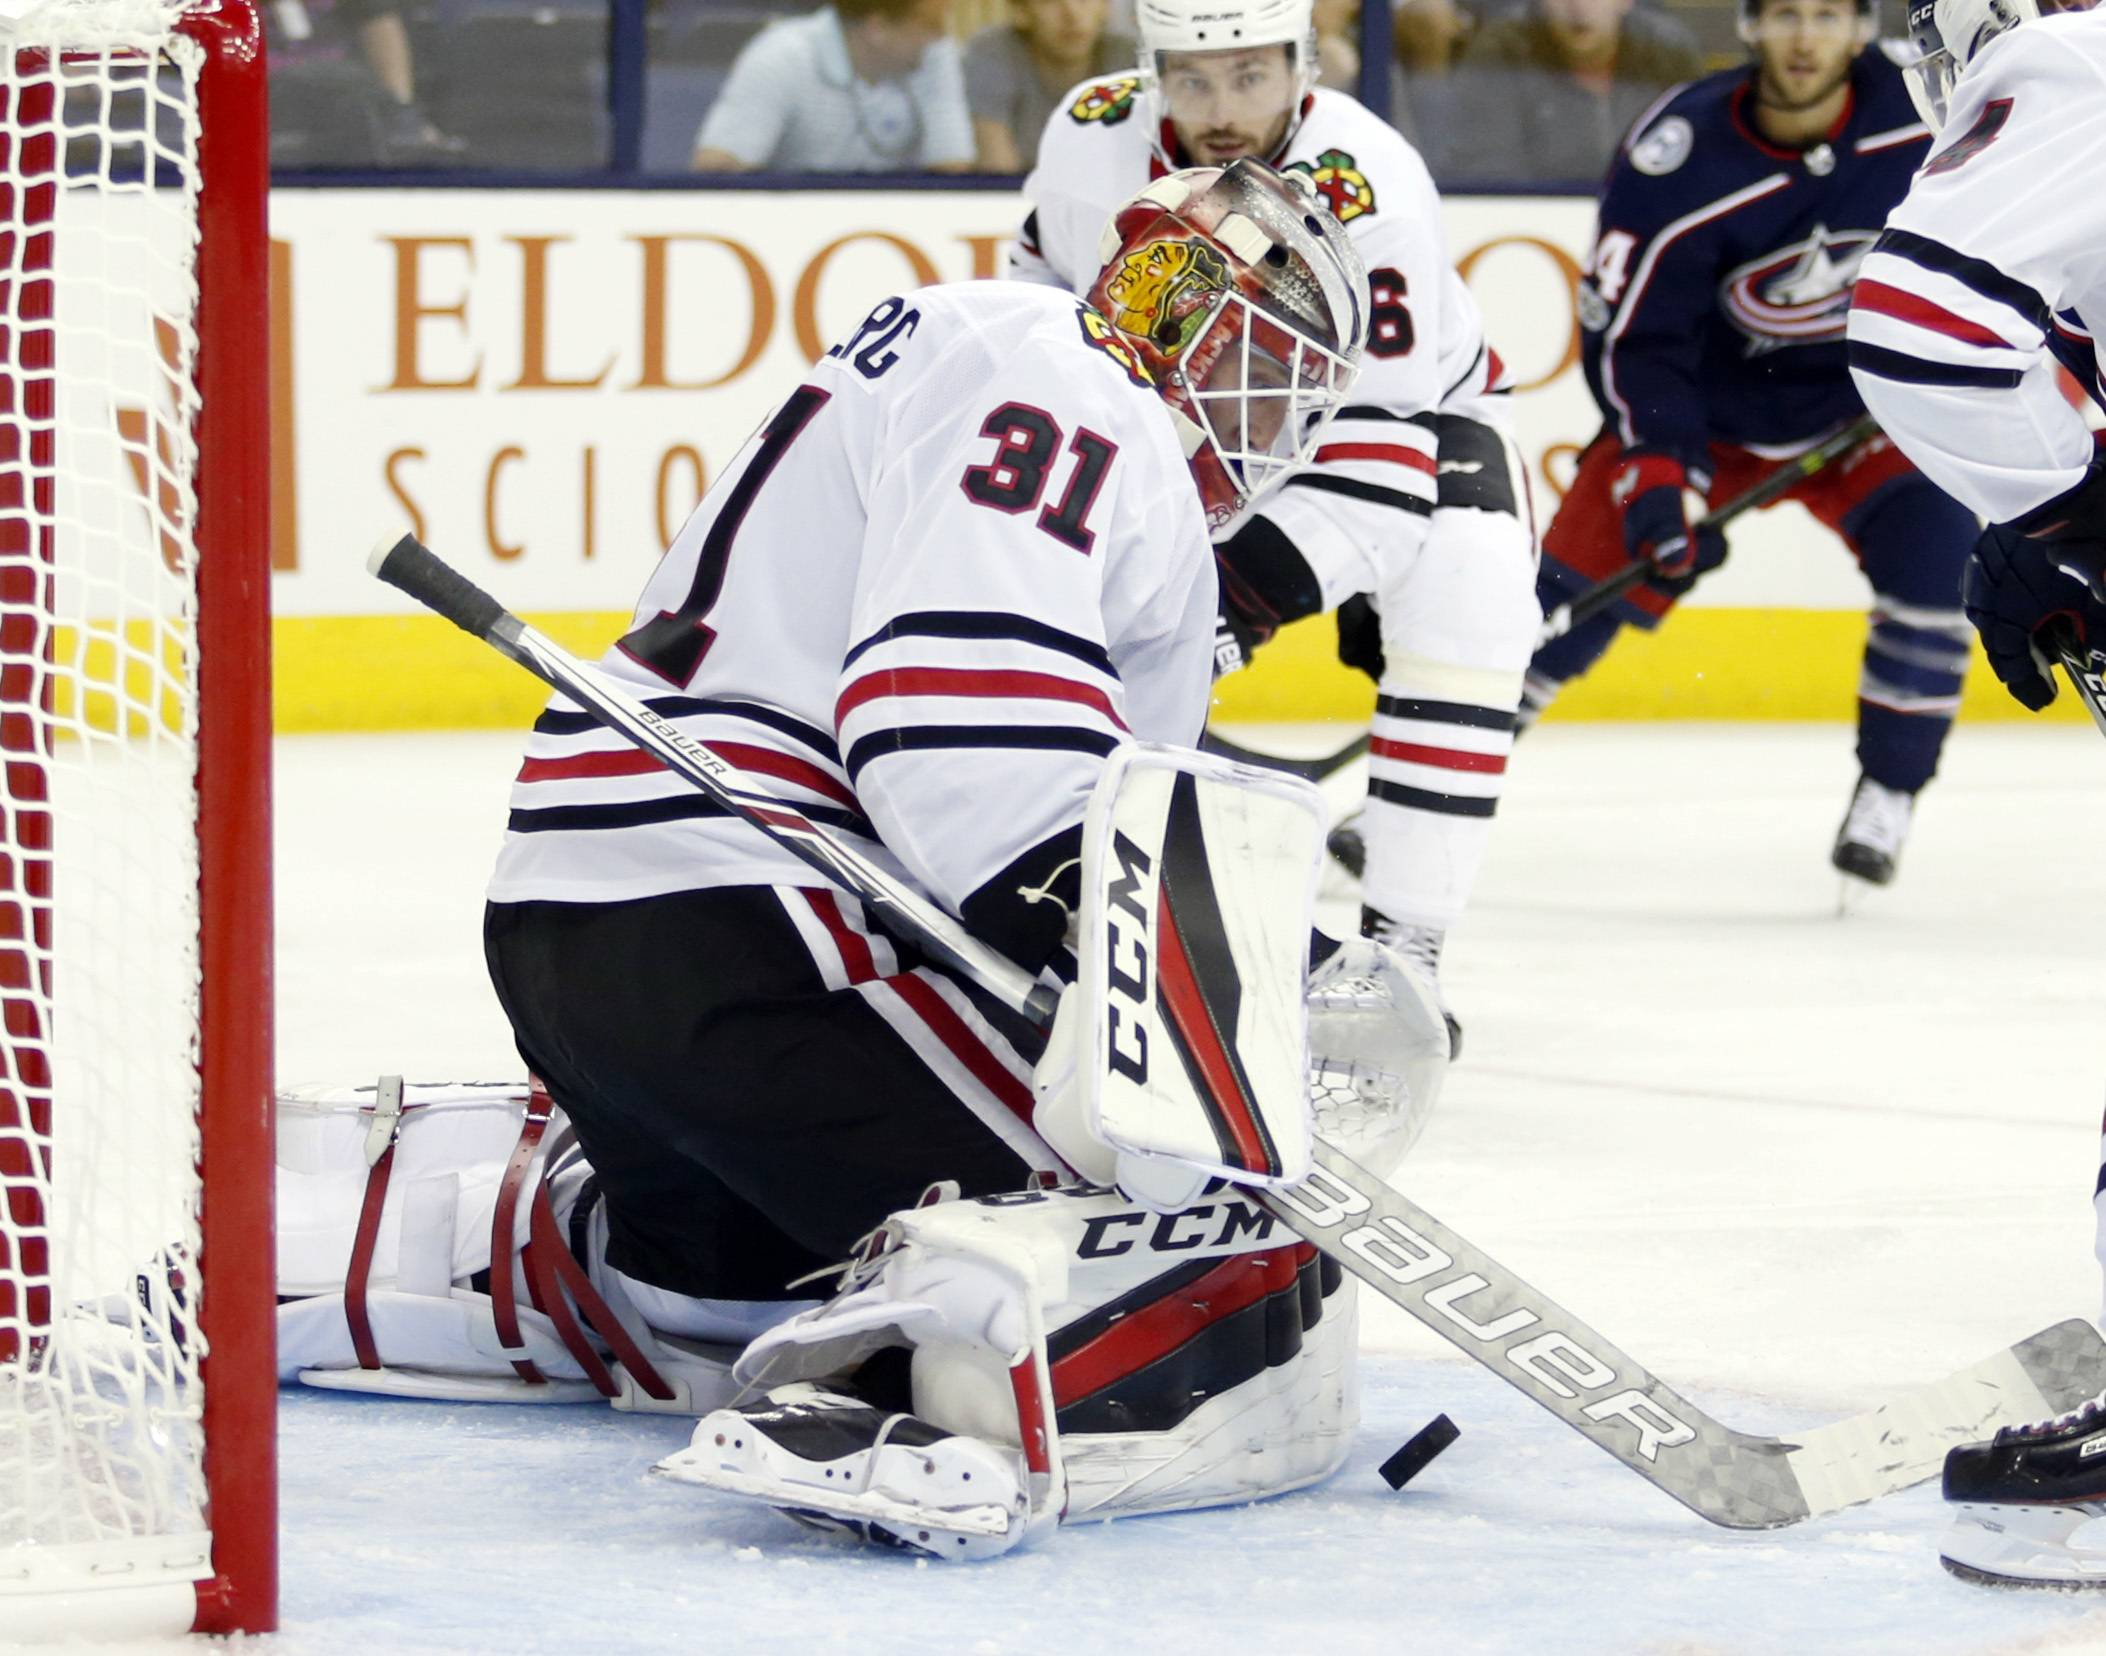 Chicago Blackhawks goalie Anton Forsberg, of Sweden, stops a shot against the Columbus Blue Jackets during the second period of a preseason NHL hockey game in Columbus, Ohio, Tuesday, Sept. 19, 2017. The Blackhawks won 5-2 (AP Photo/Paul Vernon)